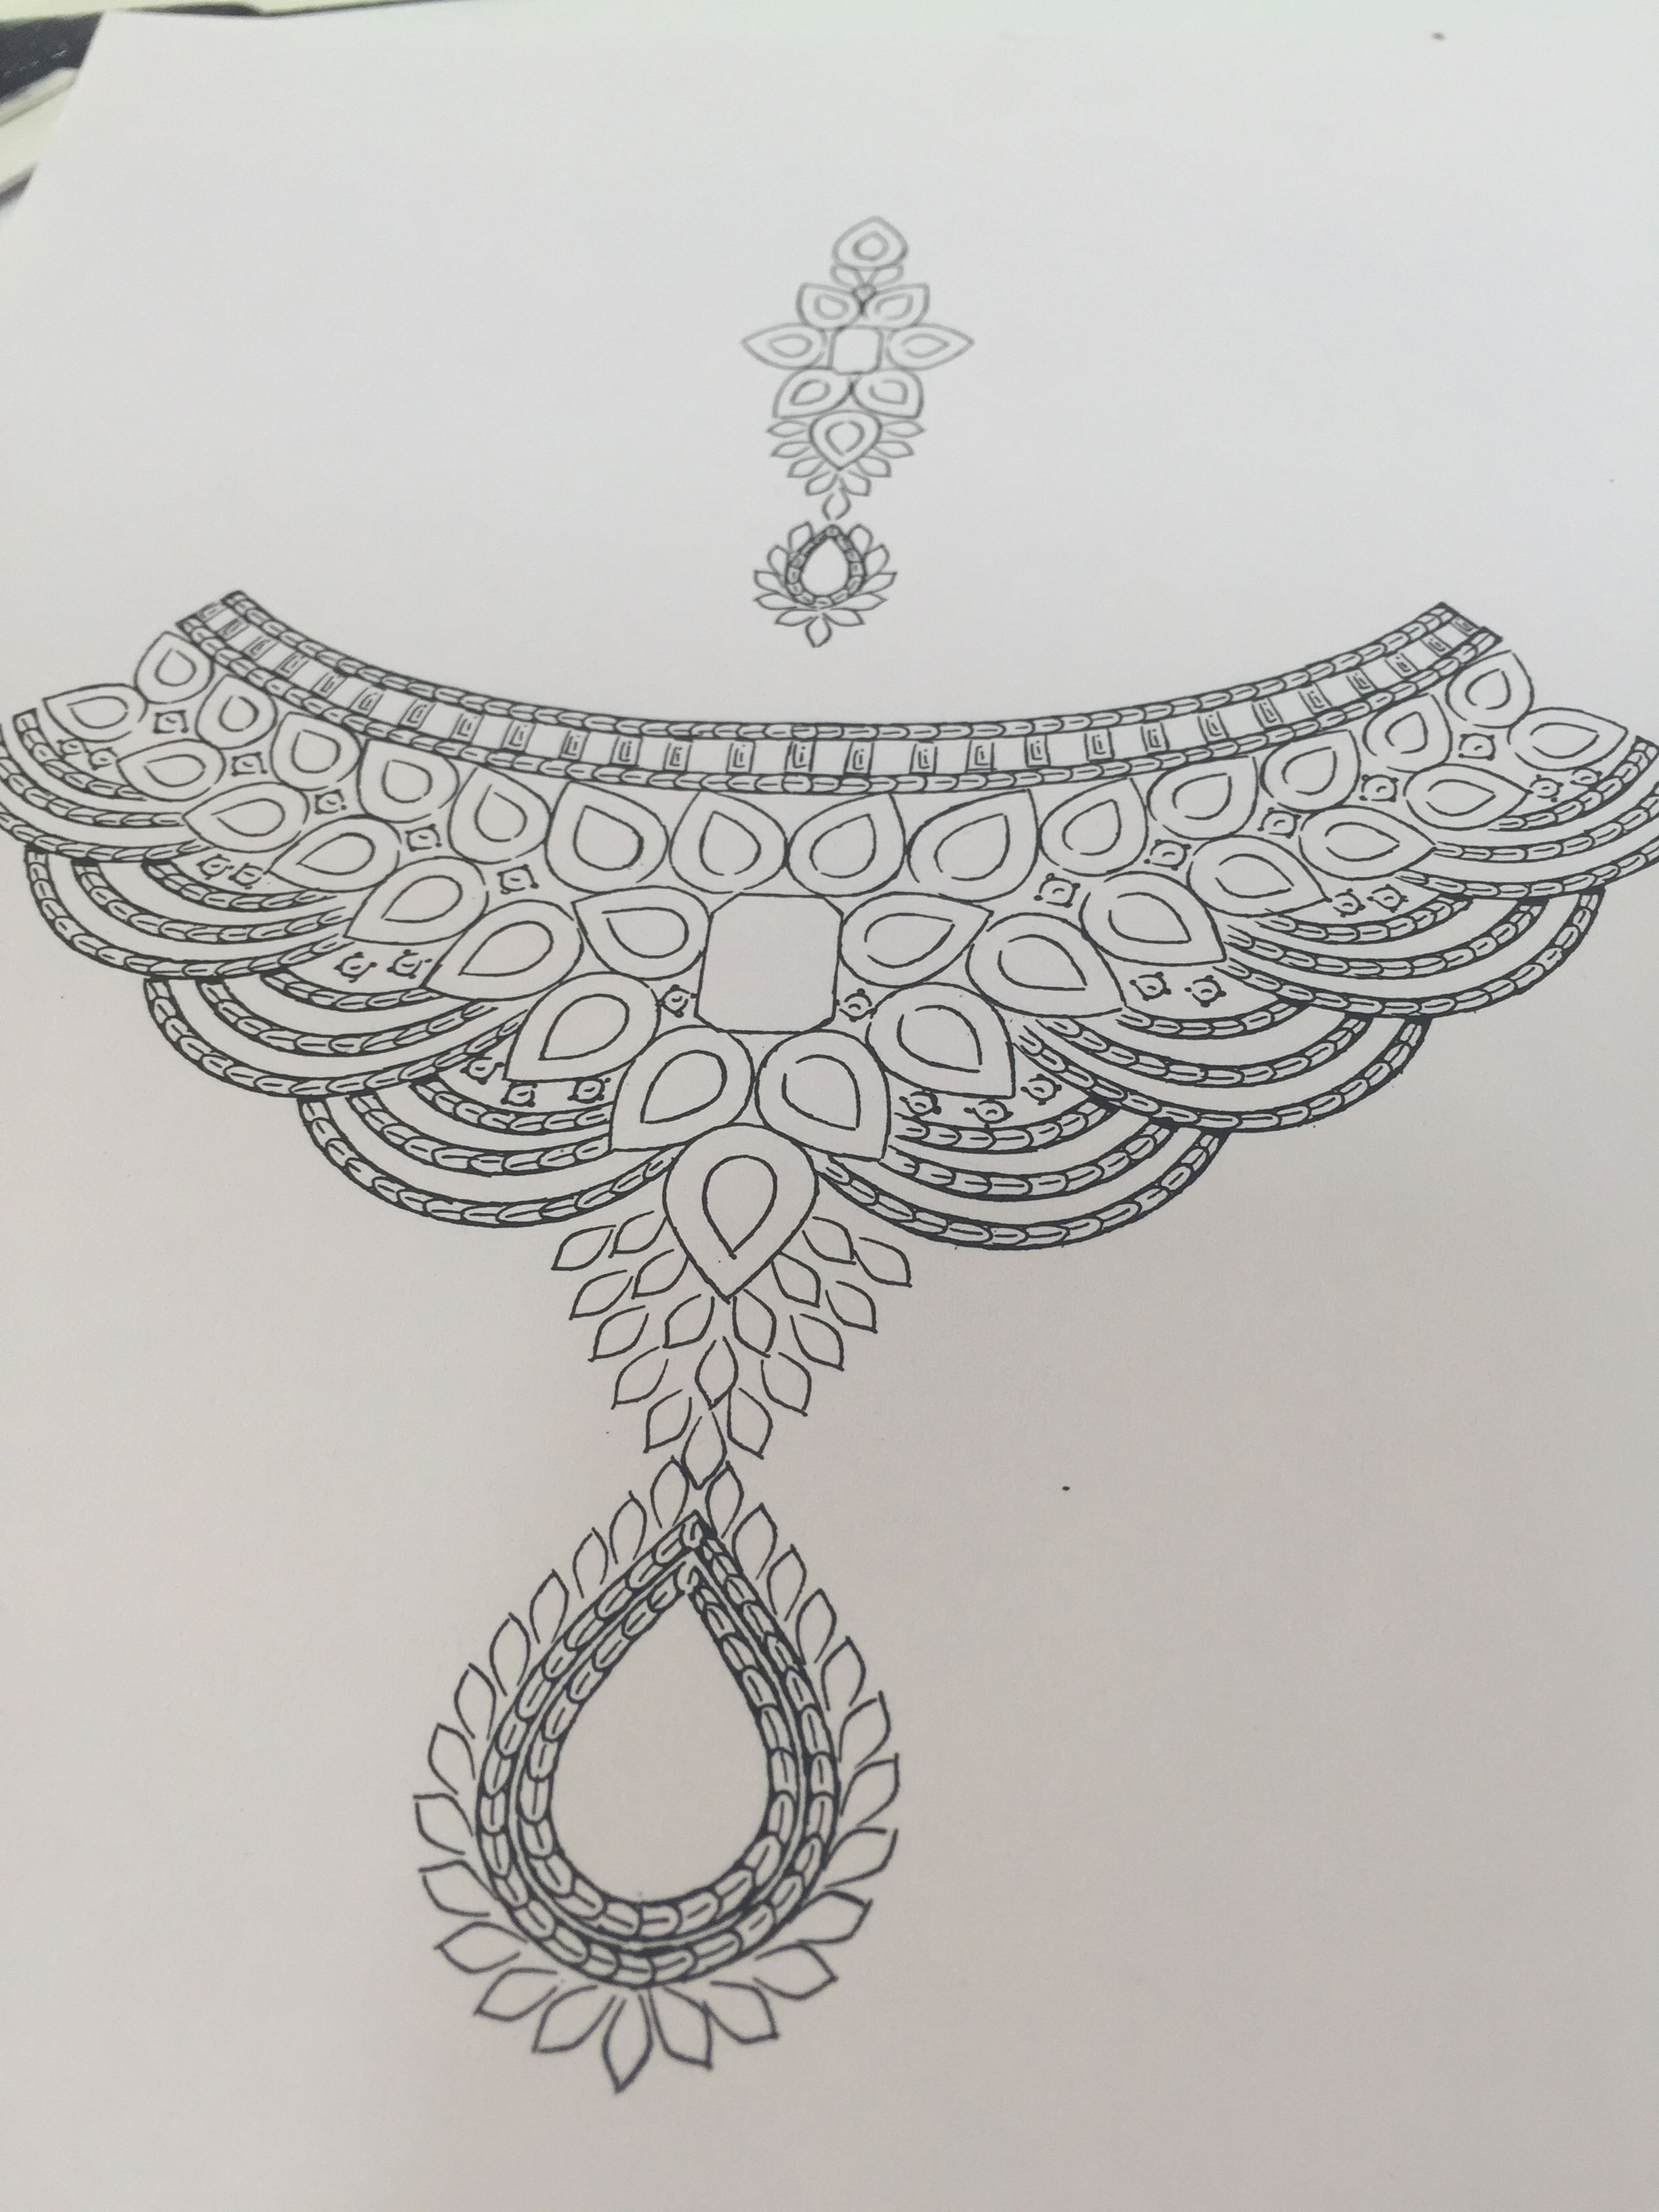 Jewelry drawing jewellery sketches aari embroidery embroidery designs pencil design sketch